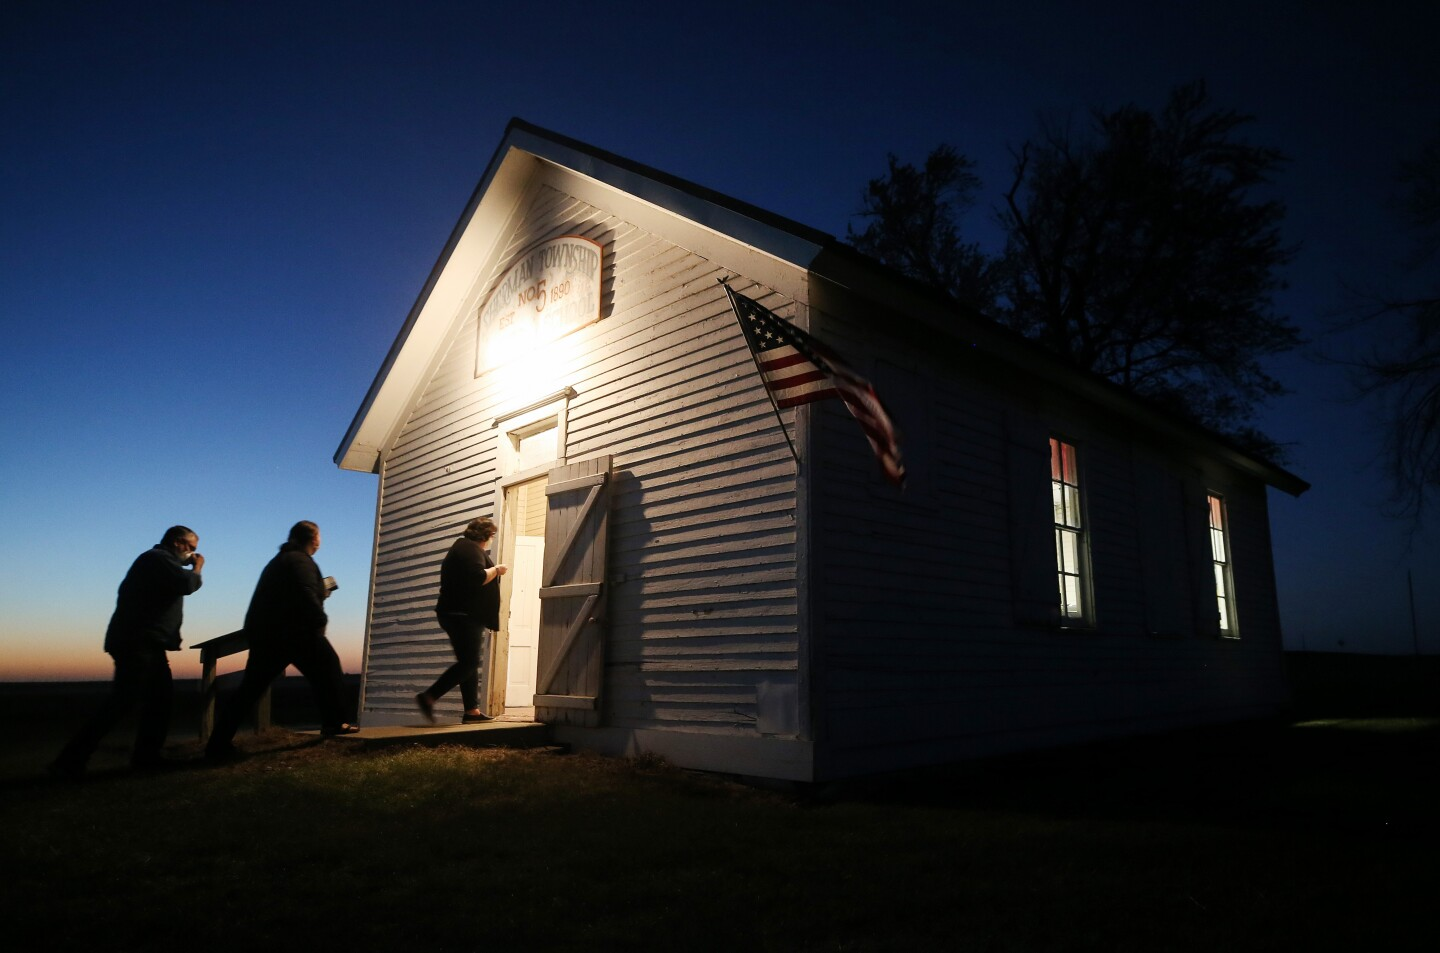 Voters enter a polling place at dusk to cast their ballots at Sherman Township Hall.